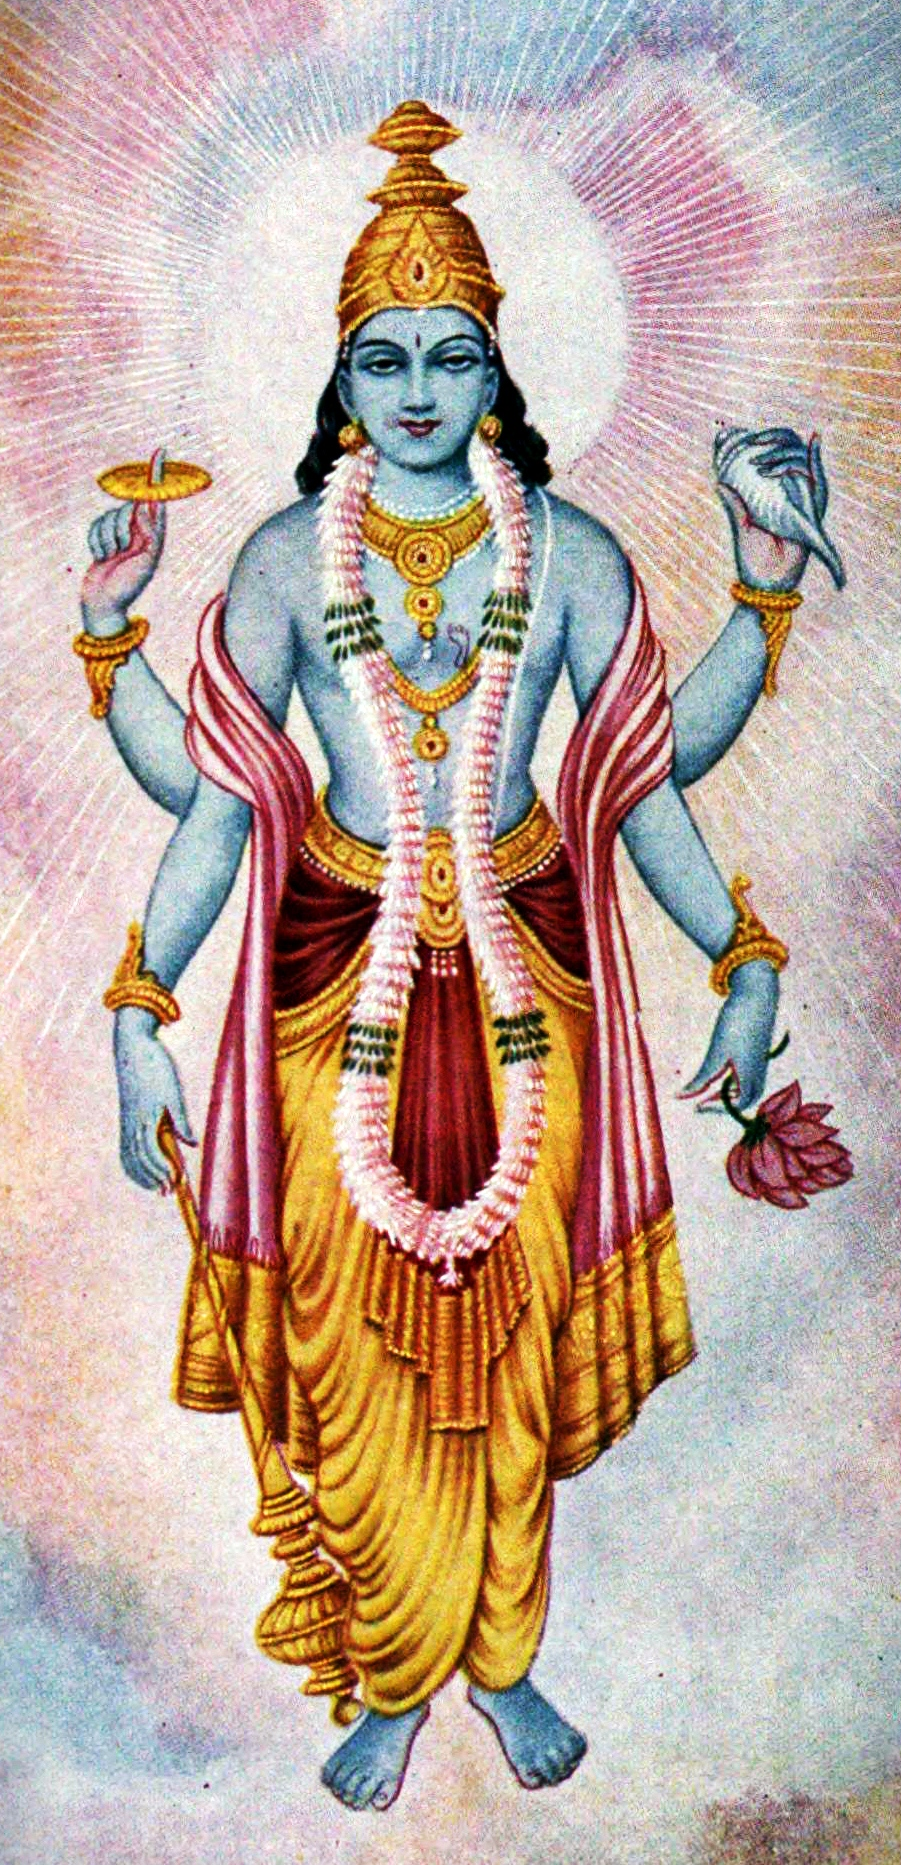 vishnu summary Each of the three main hindu deities represents a part of the life cycle: brahma  the creator, vishnu the preserver, and shiva the destroyer upon destruction.